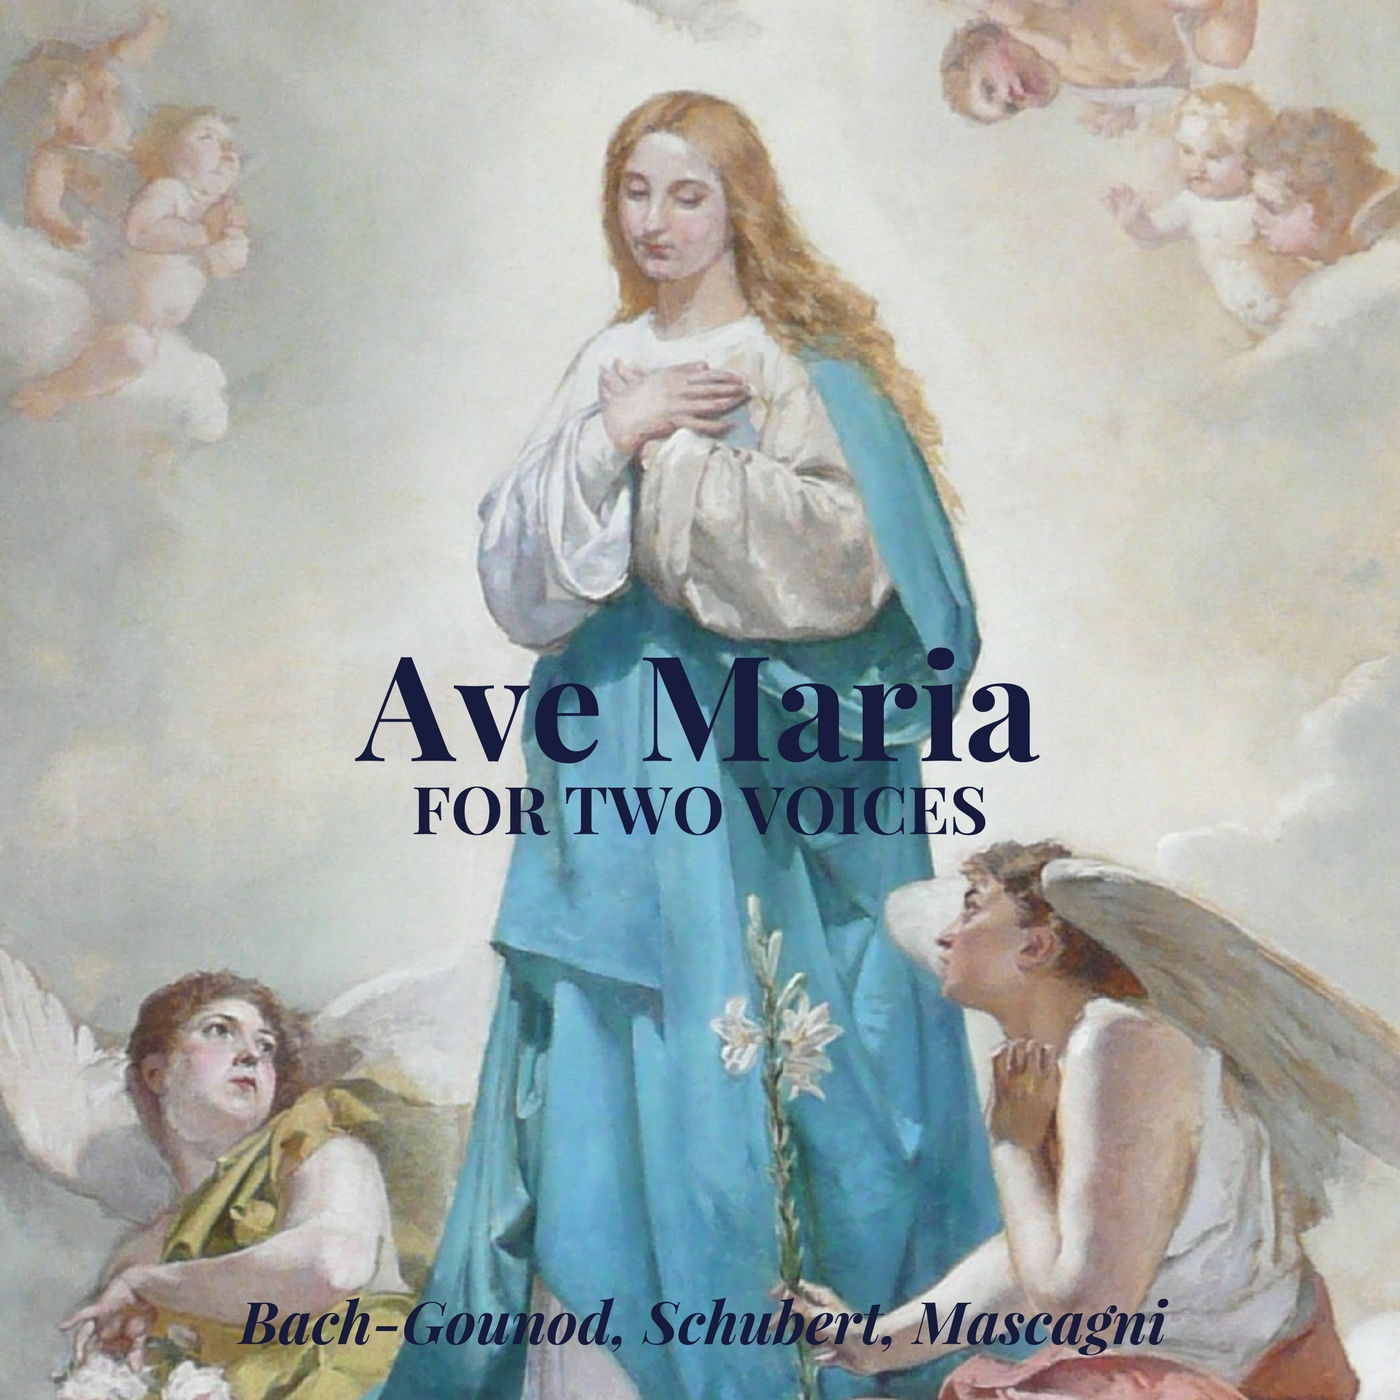 Ave Maria [for two voices] (Bach-Gounod, Schubert, Mascagni) | Sacred Christmas Music